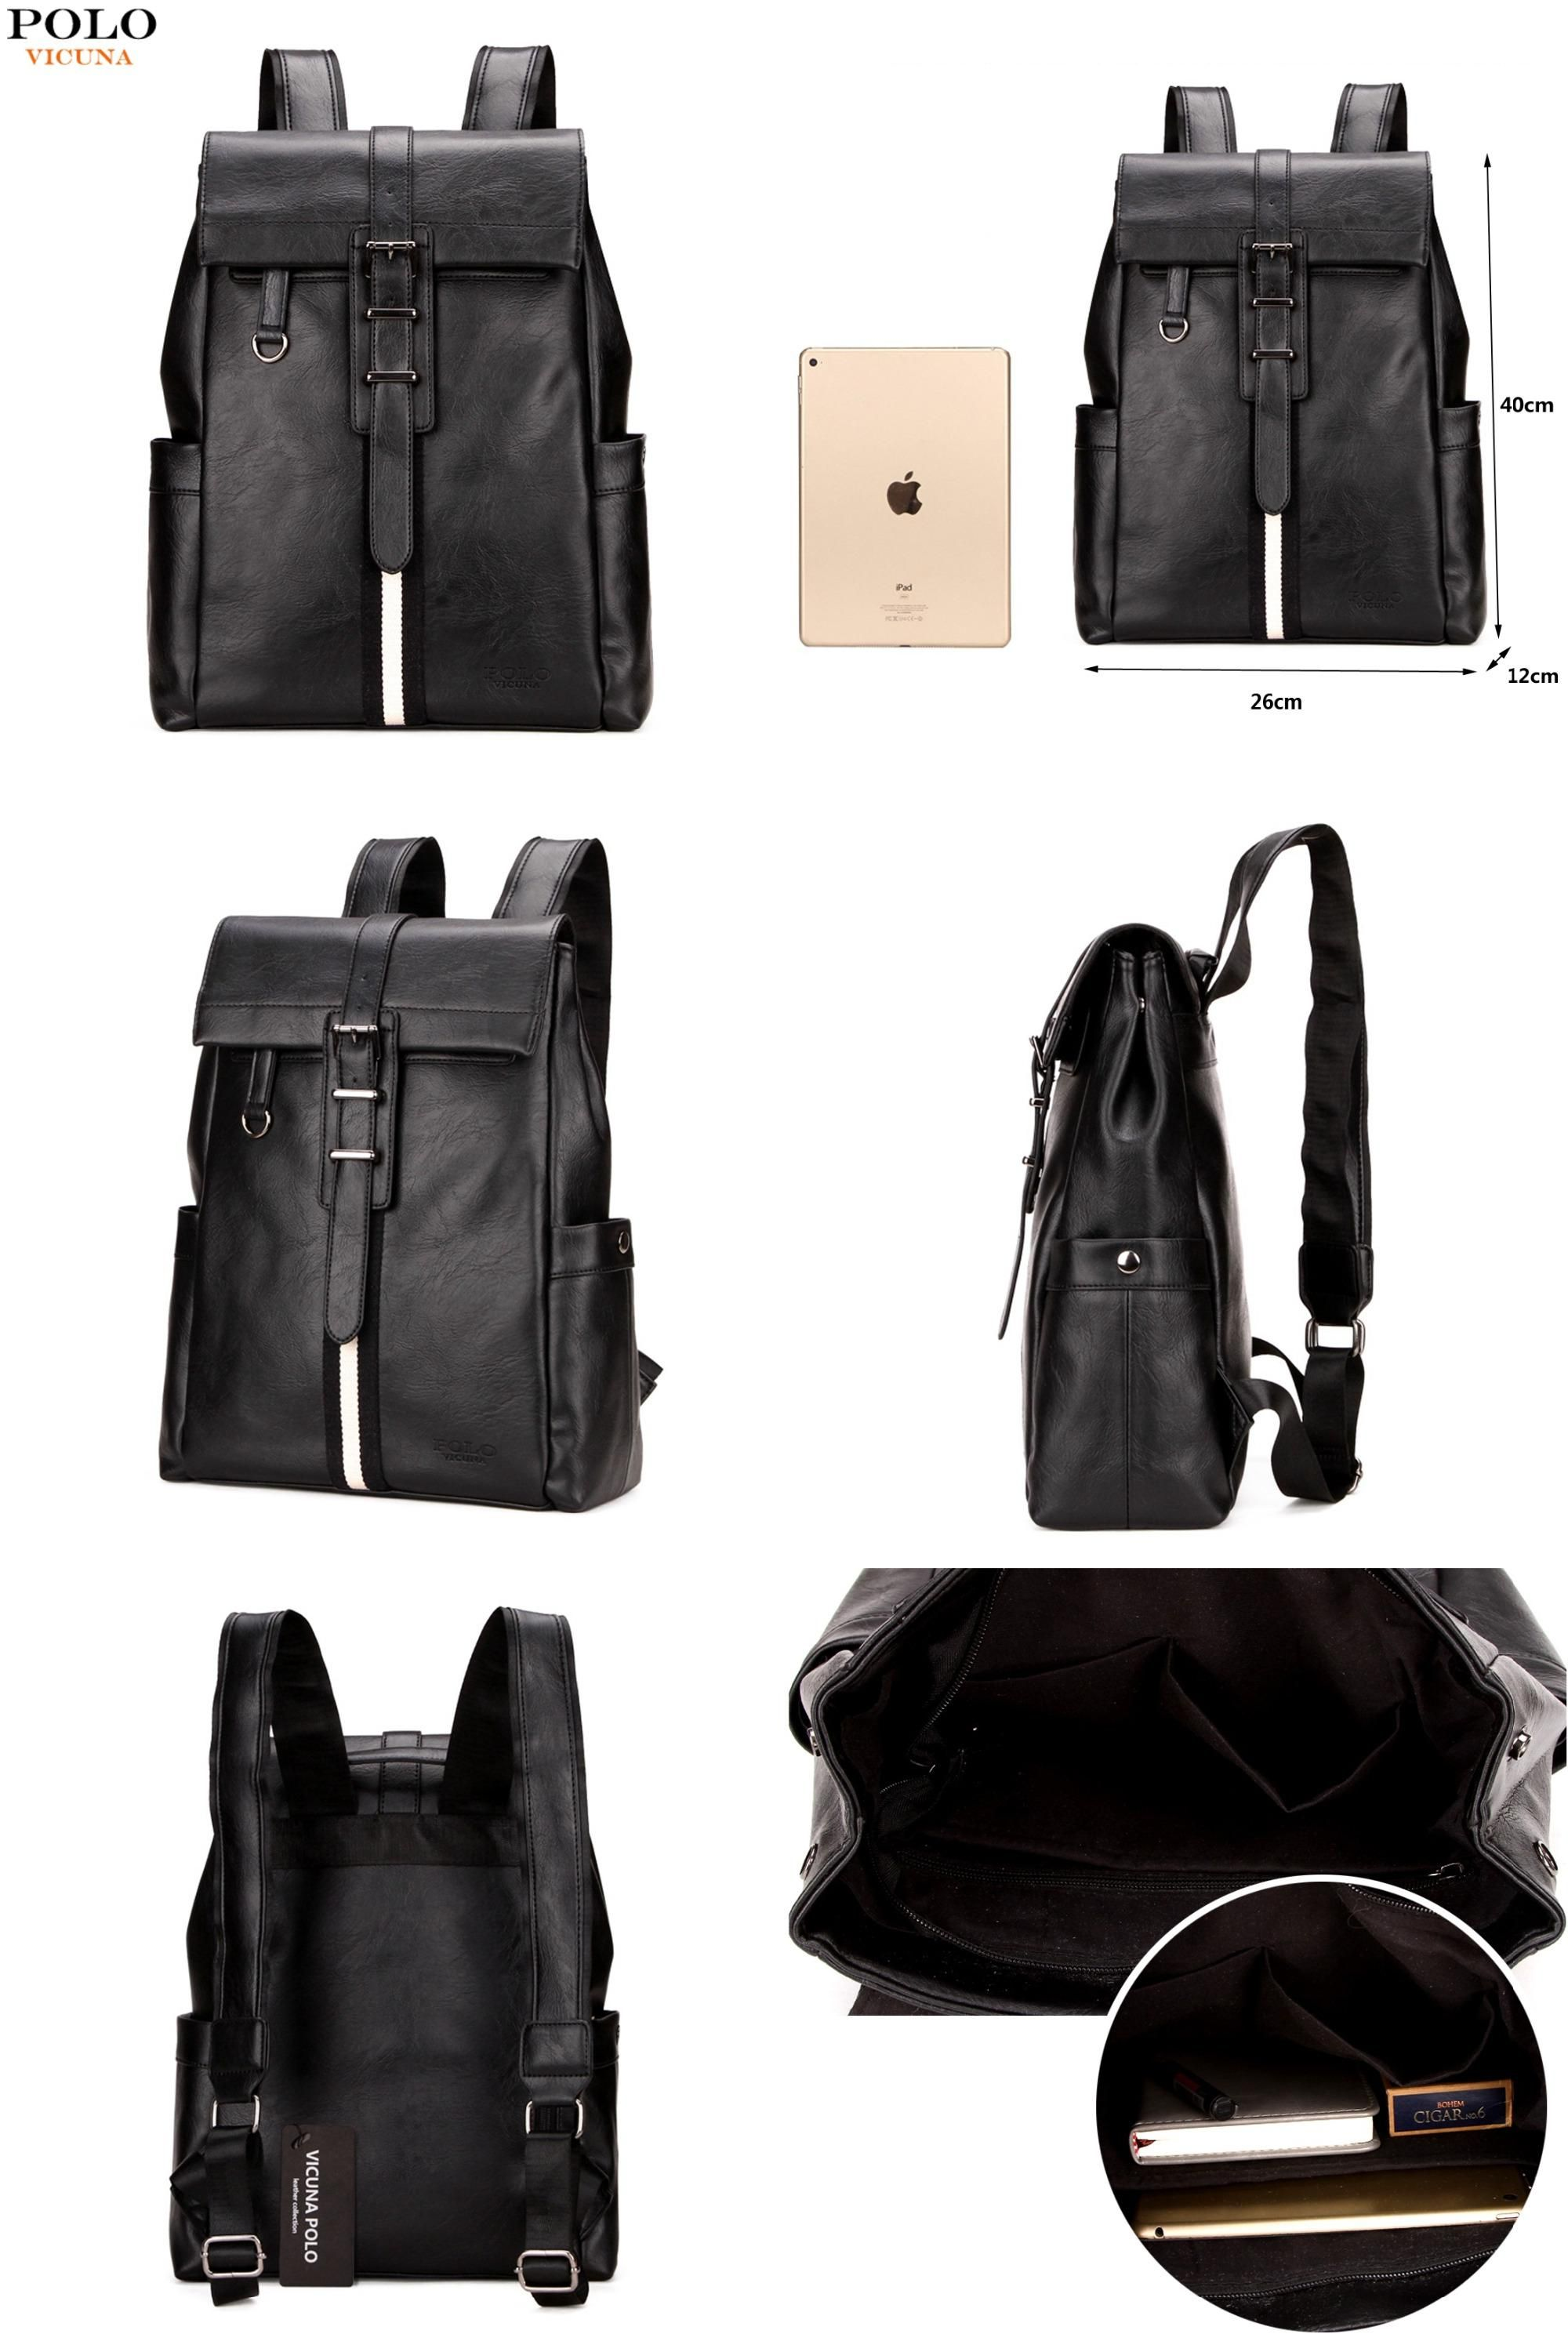 bd1876b73a02  Visit to Buy  VICUNA POLO Fashion Striped Men Leather Backpack Bag Large  Capacity Cover